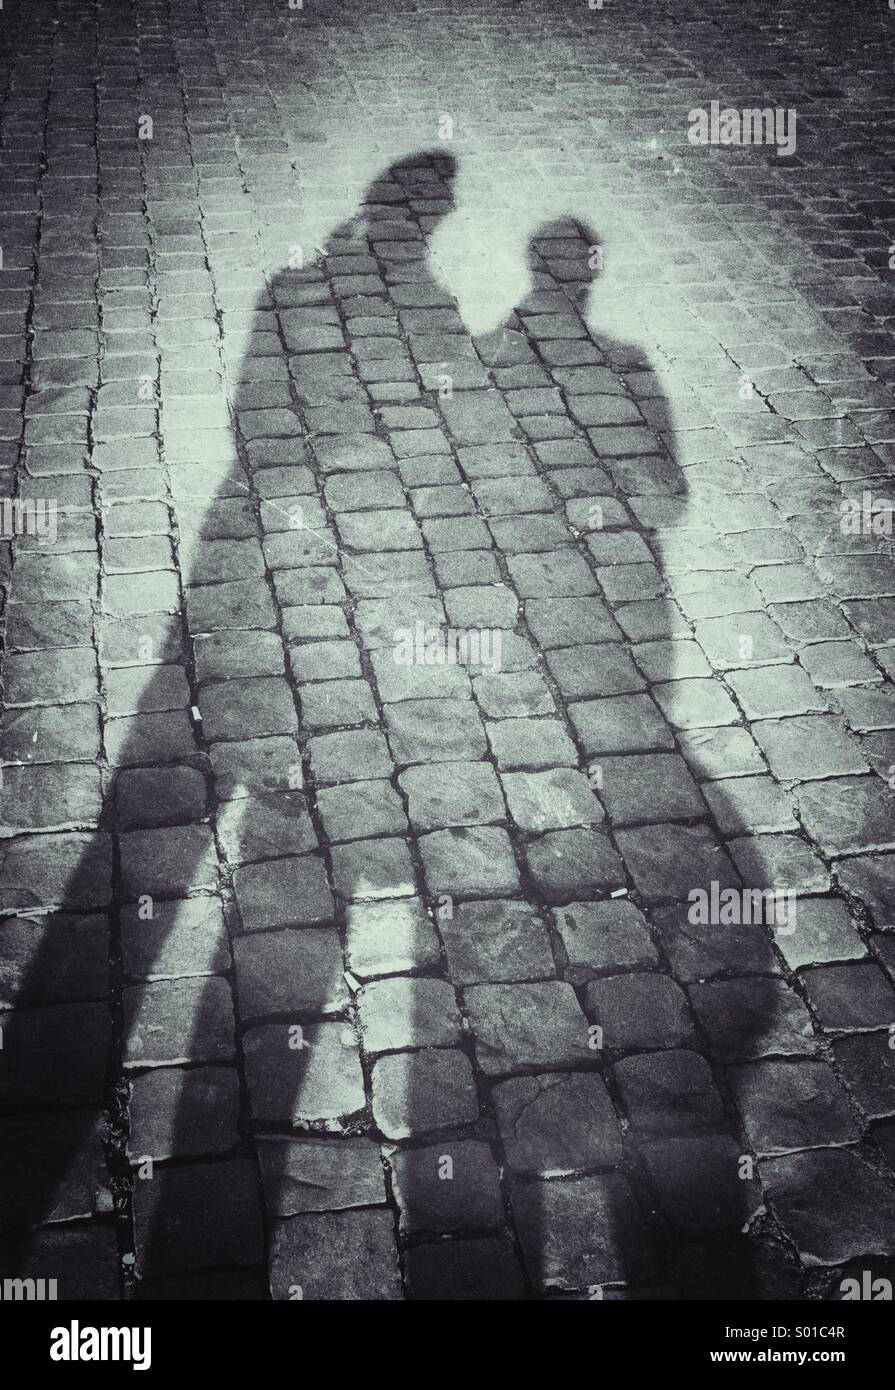 Shadow of a man and woman on cobbles - Stock Image